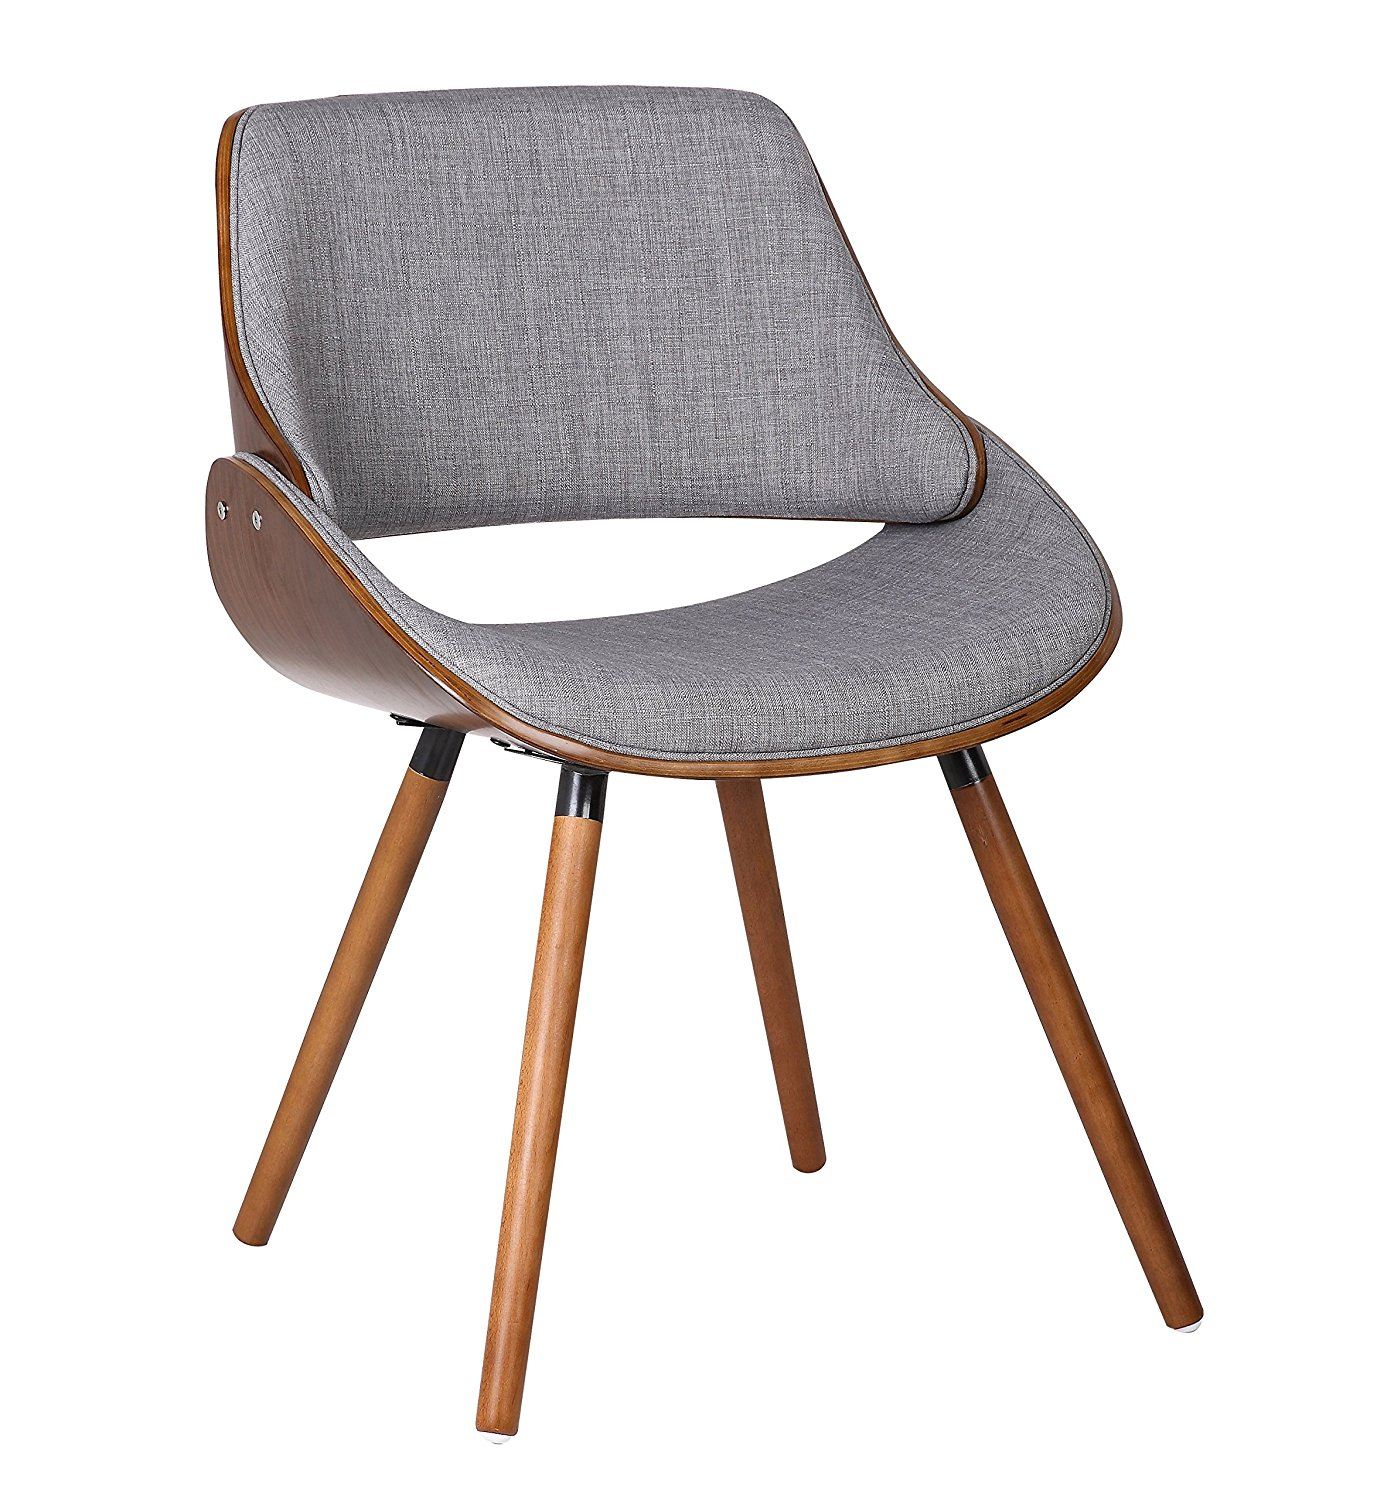 US Pride Furniture Mid Century Wood and Fabric Upholstered Chair with High Wraparound Back, Grey, C-064